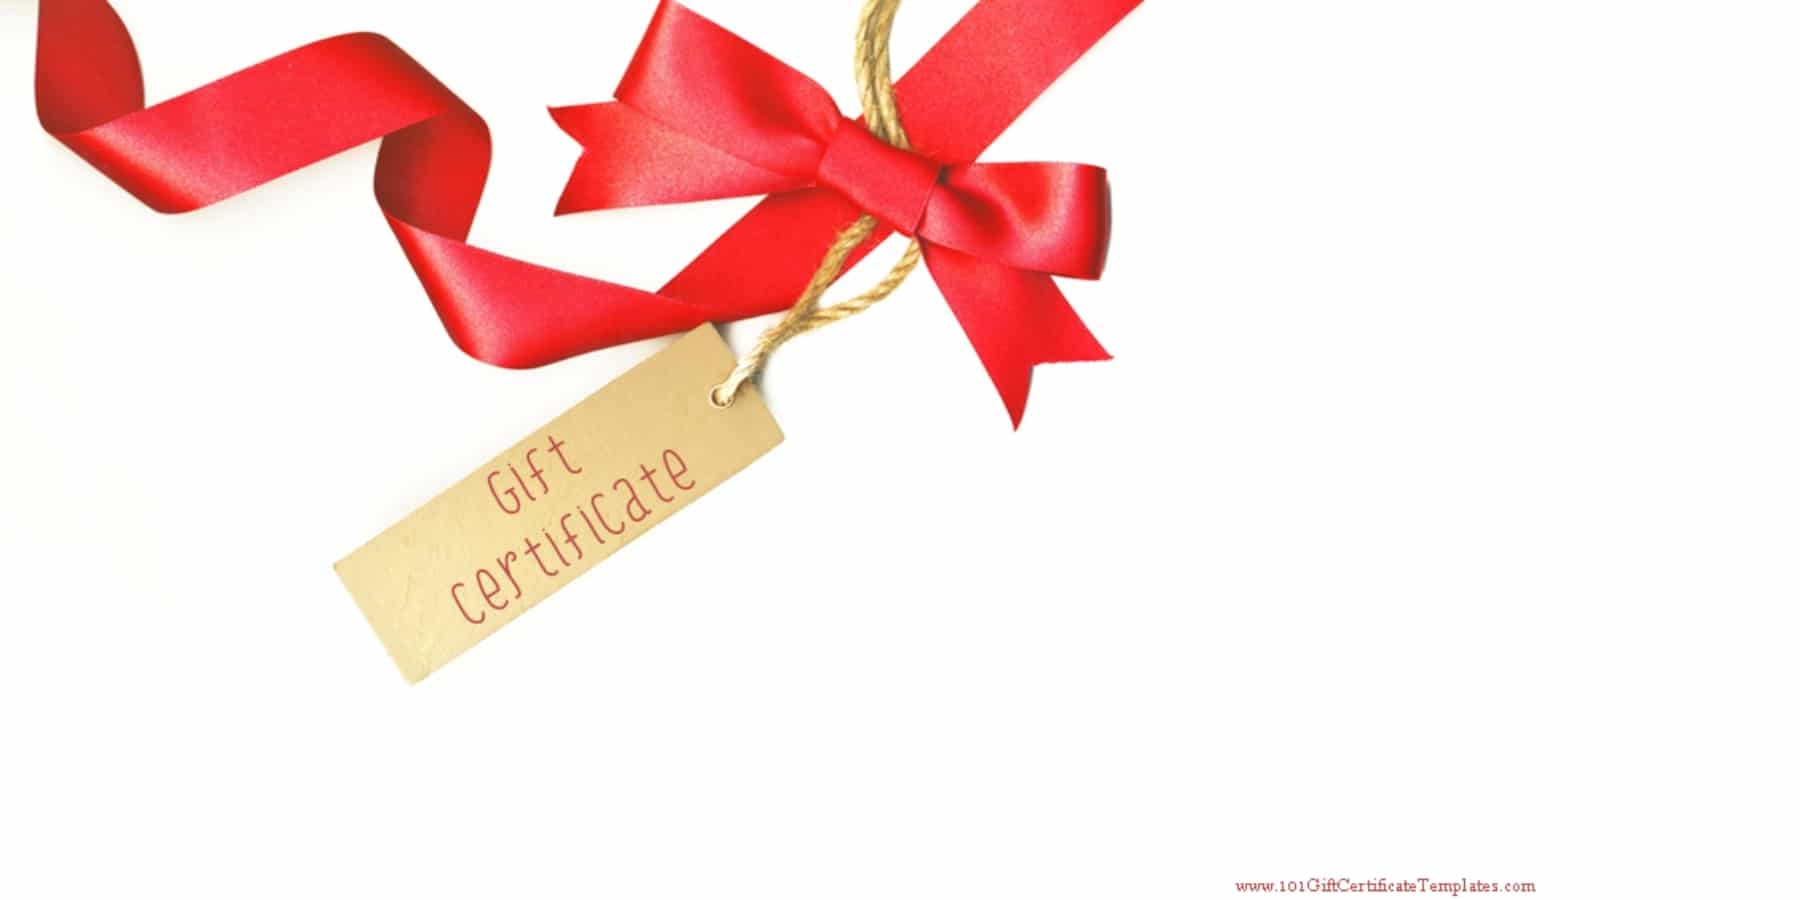 Printable gift certificate templates gift card which can be customized in any way with our gift card maker negle